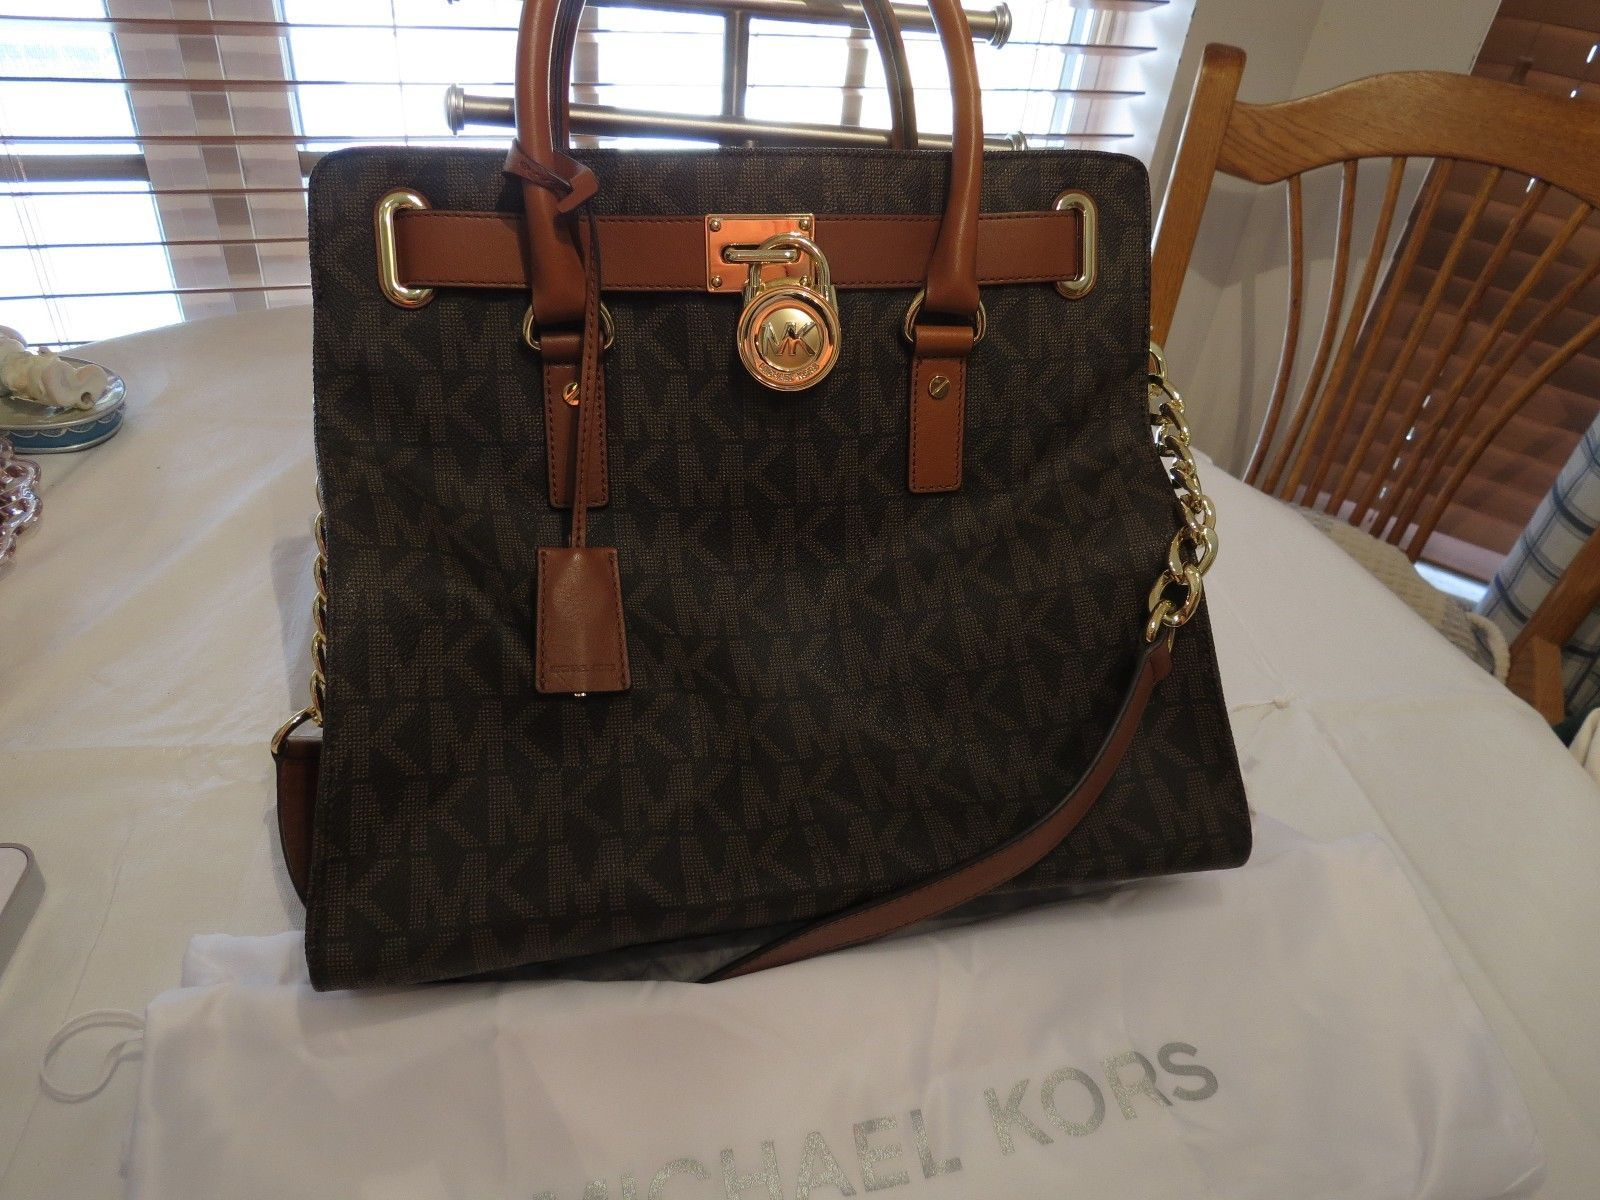 8504ddcdbcfa 57. 57. Previous. Michael Kors Hamilton Large Brown PVC Leather Tote Shoulder  Handbag Bag Purse. Michael ...